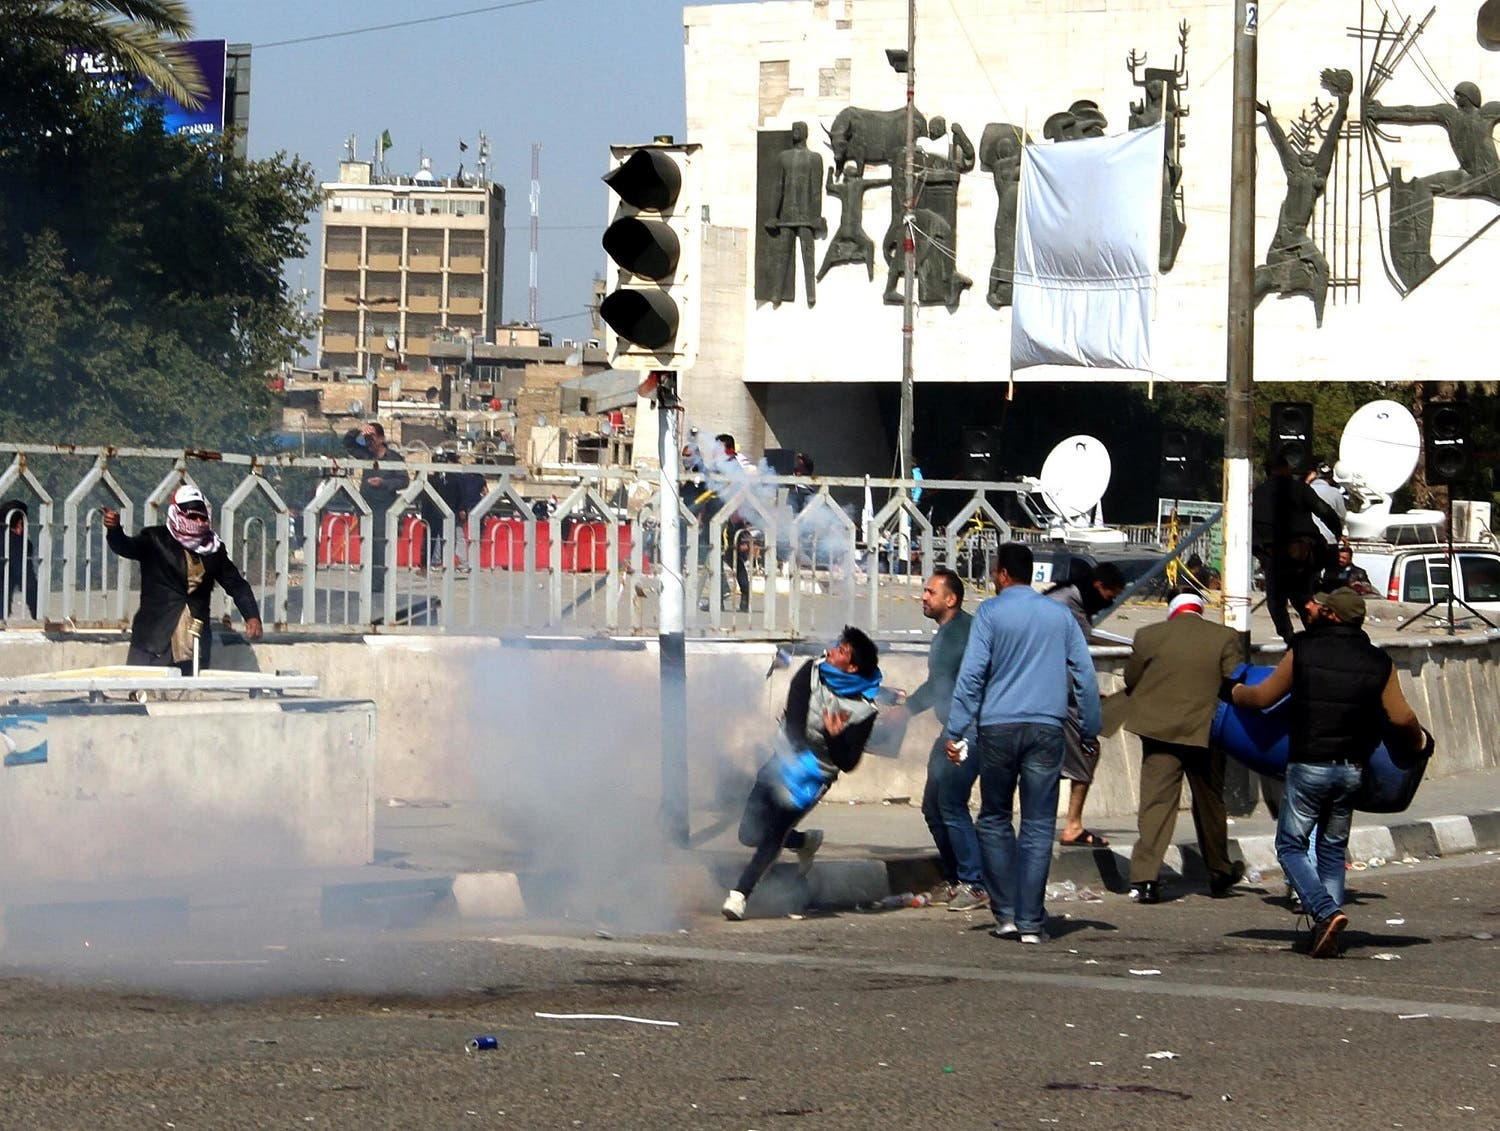 Protesters run from tear gas fired by security forces after Sadr supporters tried to approach the heavily fortified Green Zone during a protest at Tahrir Square in Baghdad. (Reuters)